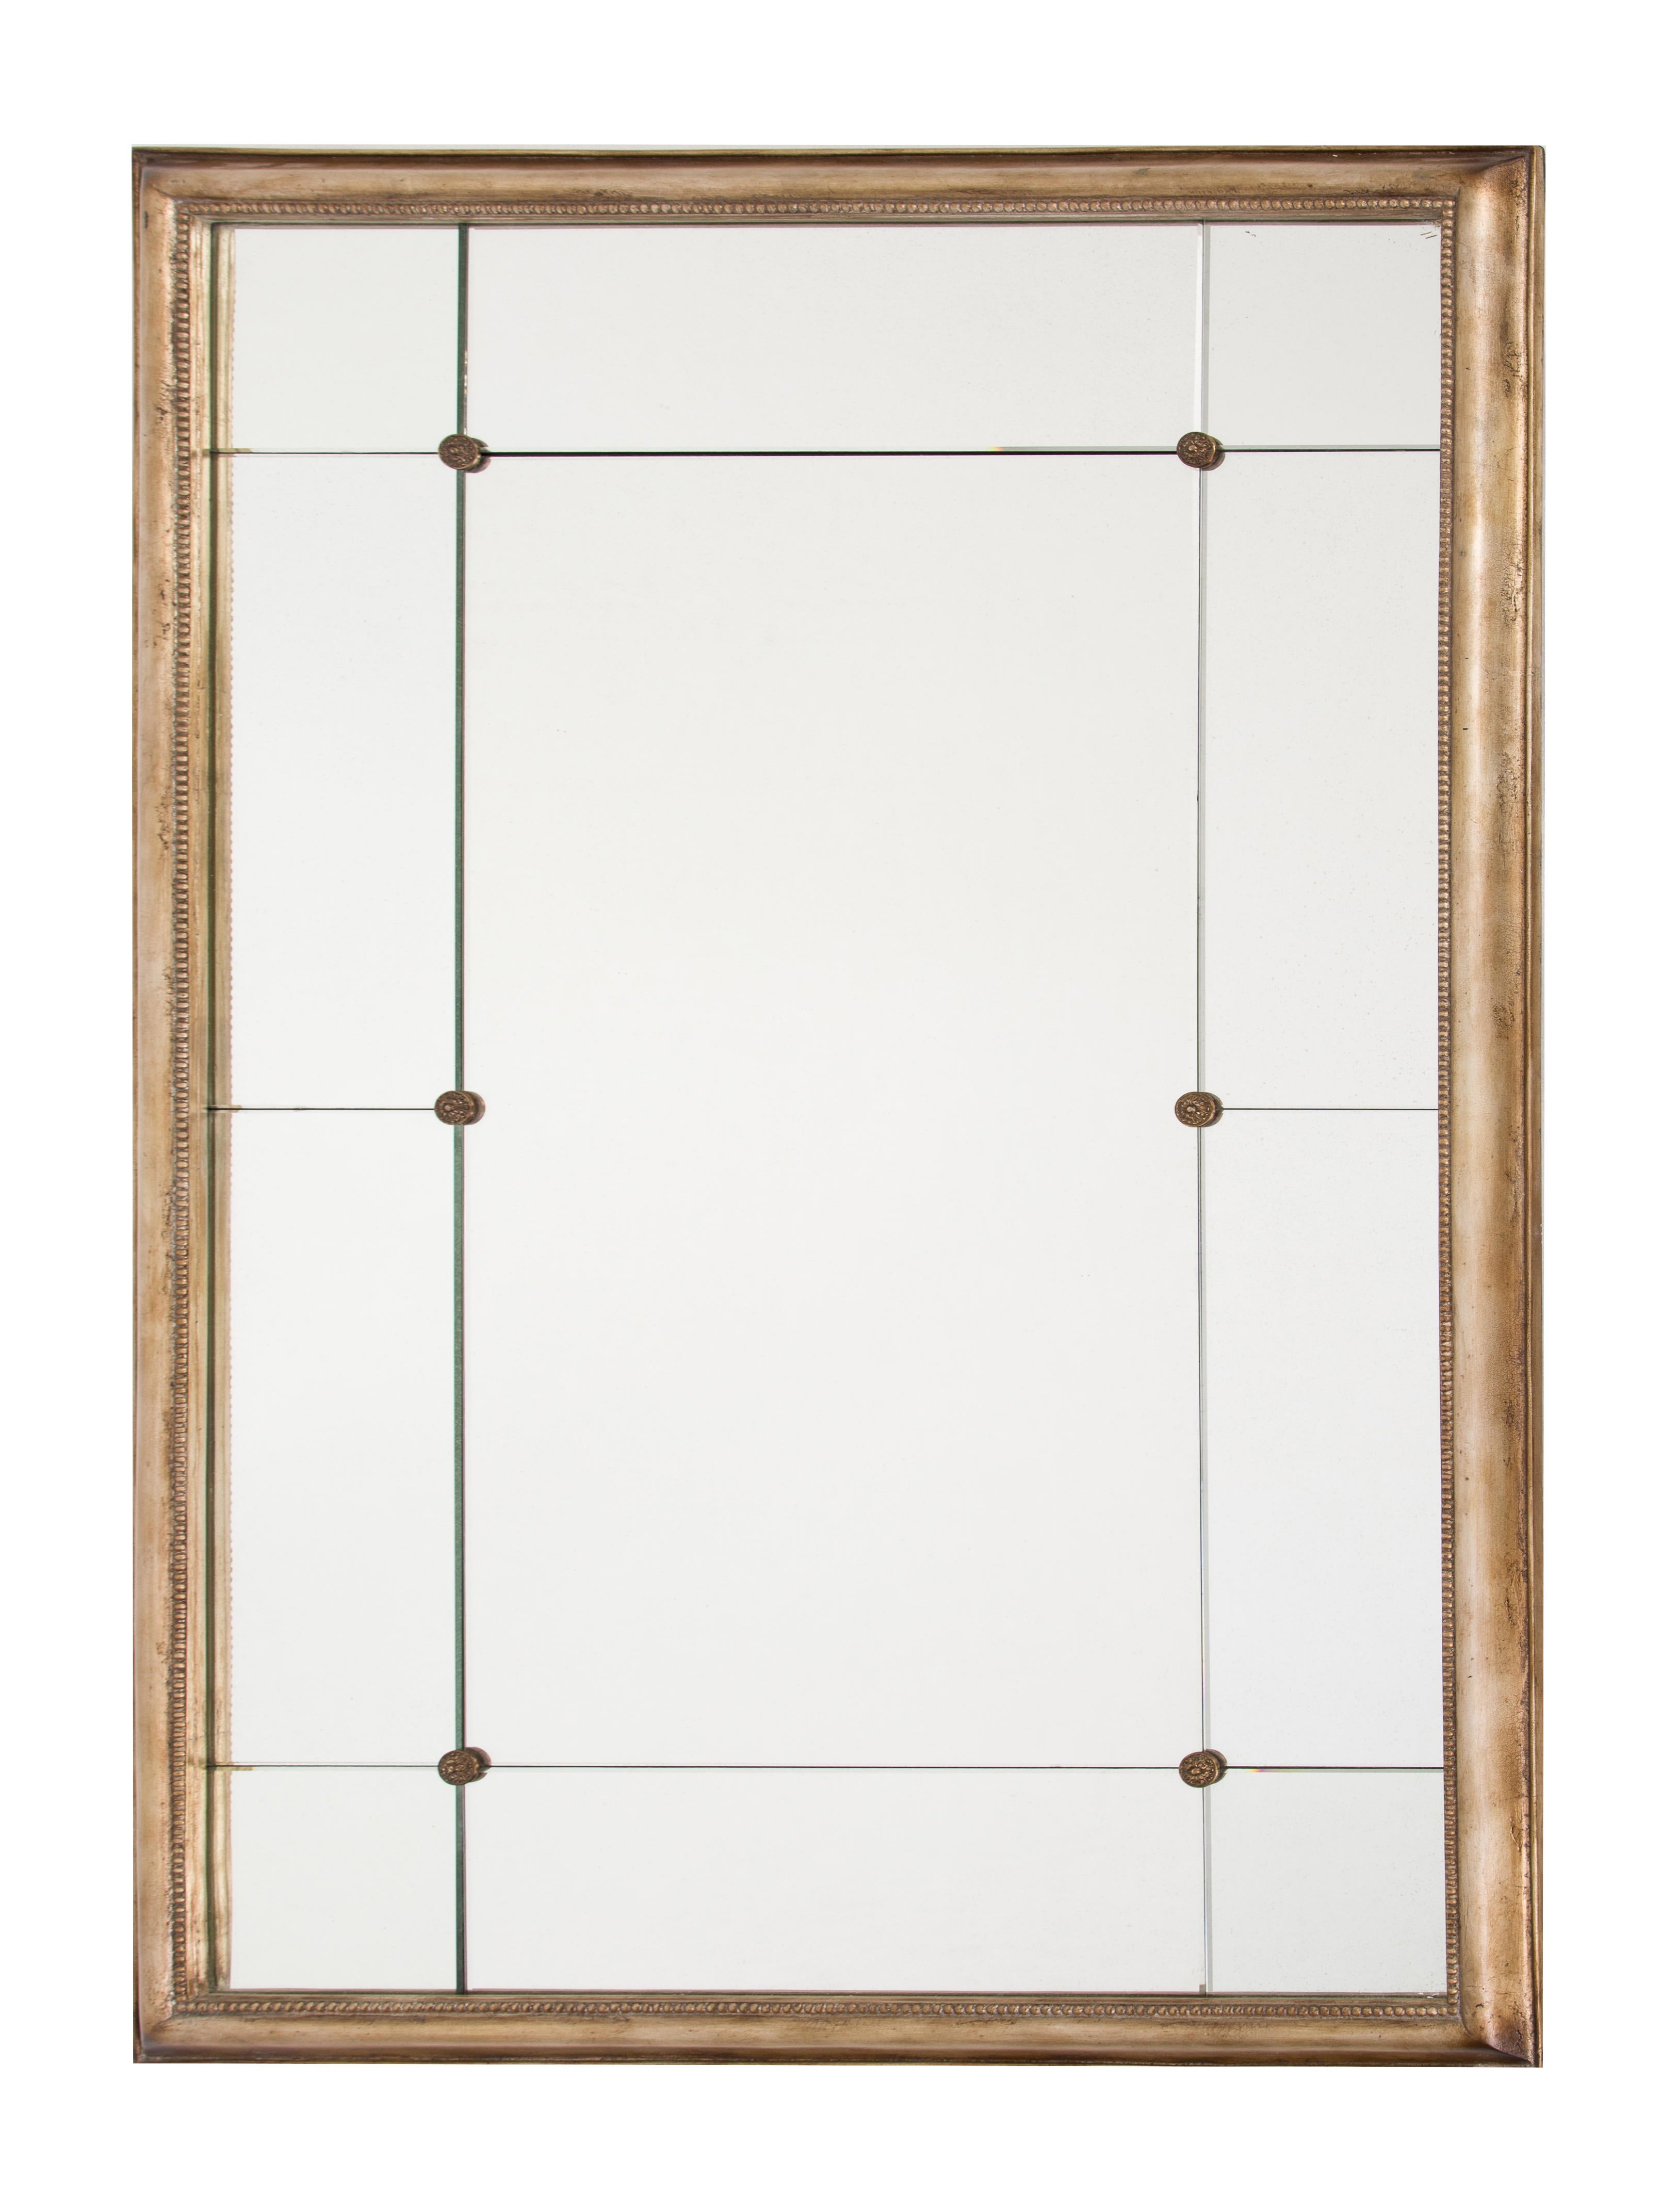 Floor Length Giltwood Mirror Decor And Accessories